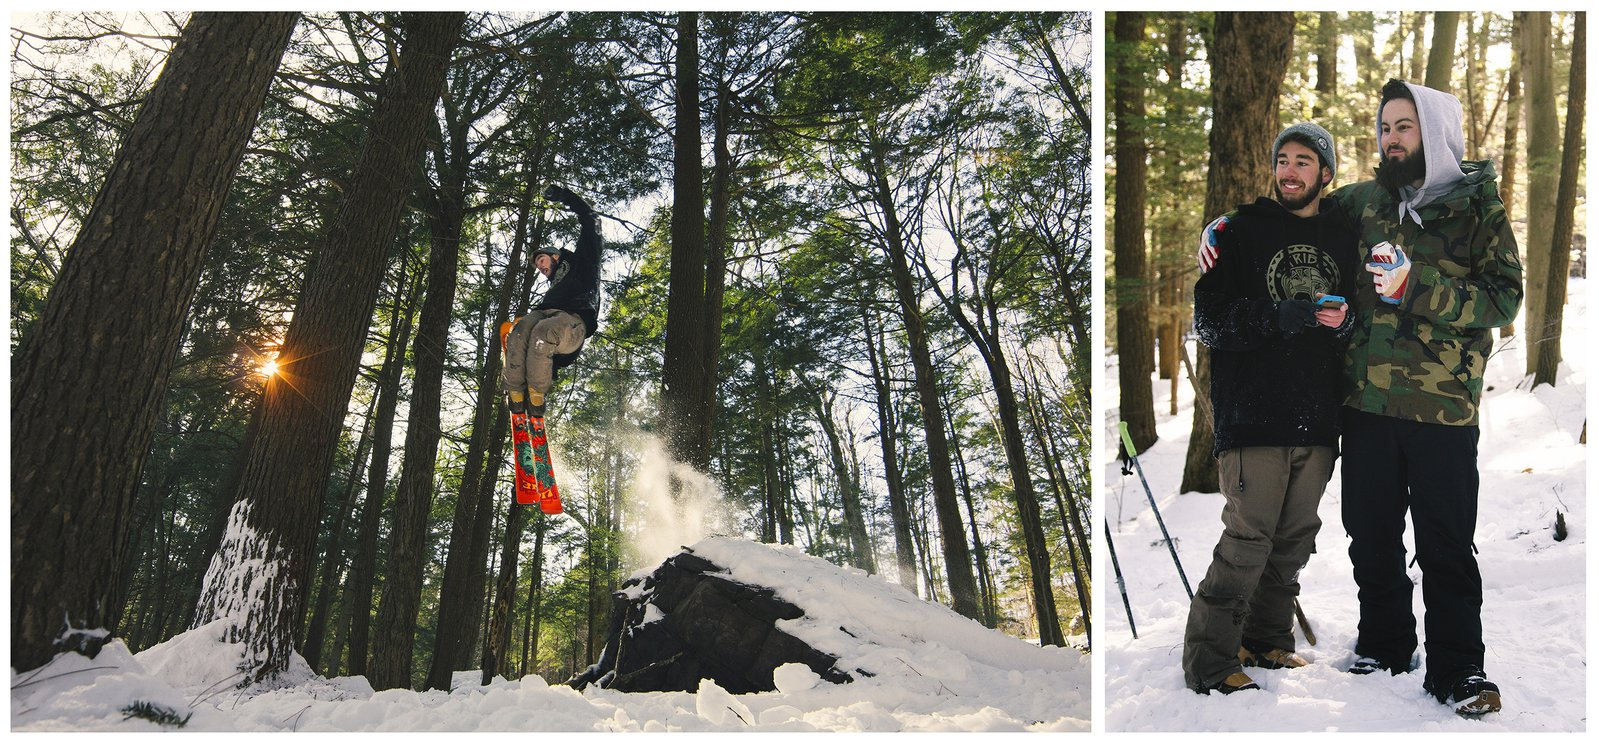 Trees, Skis and Heavy B's